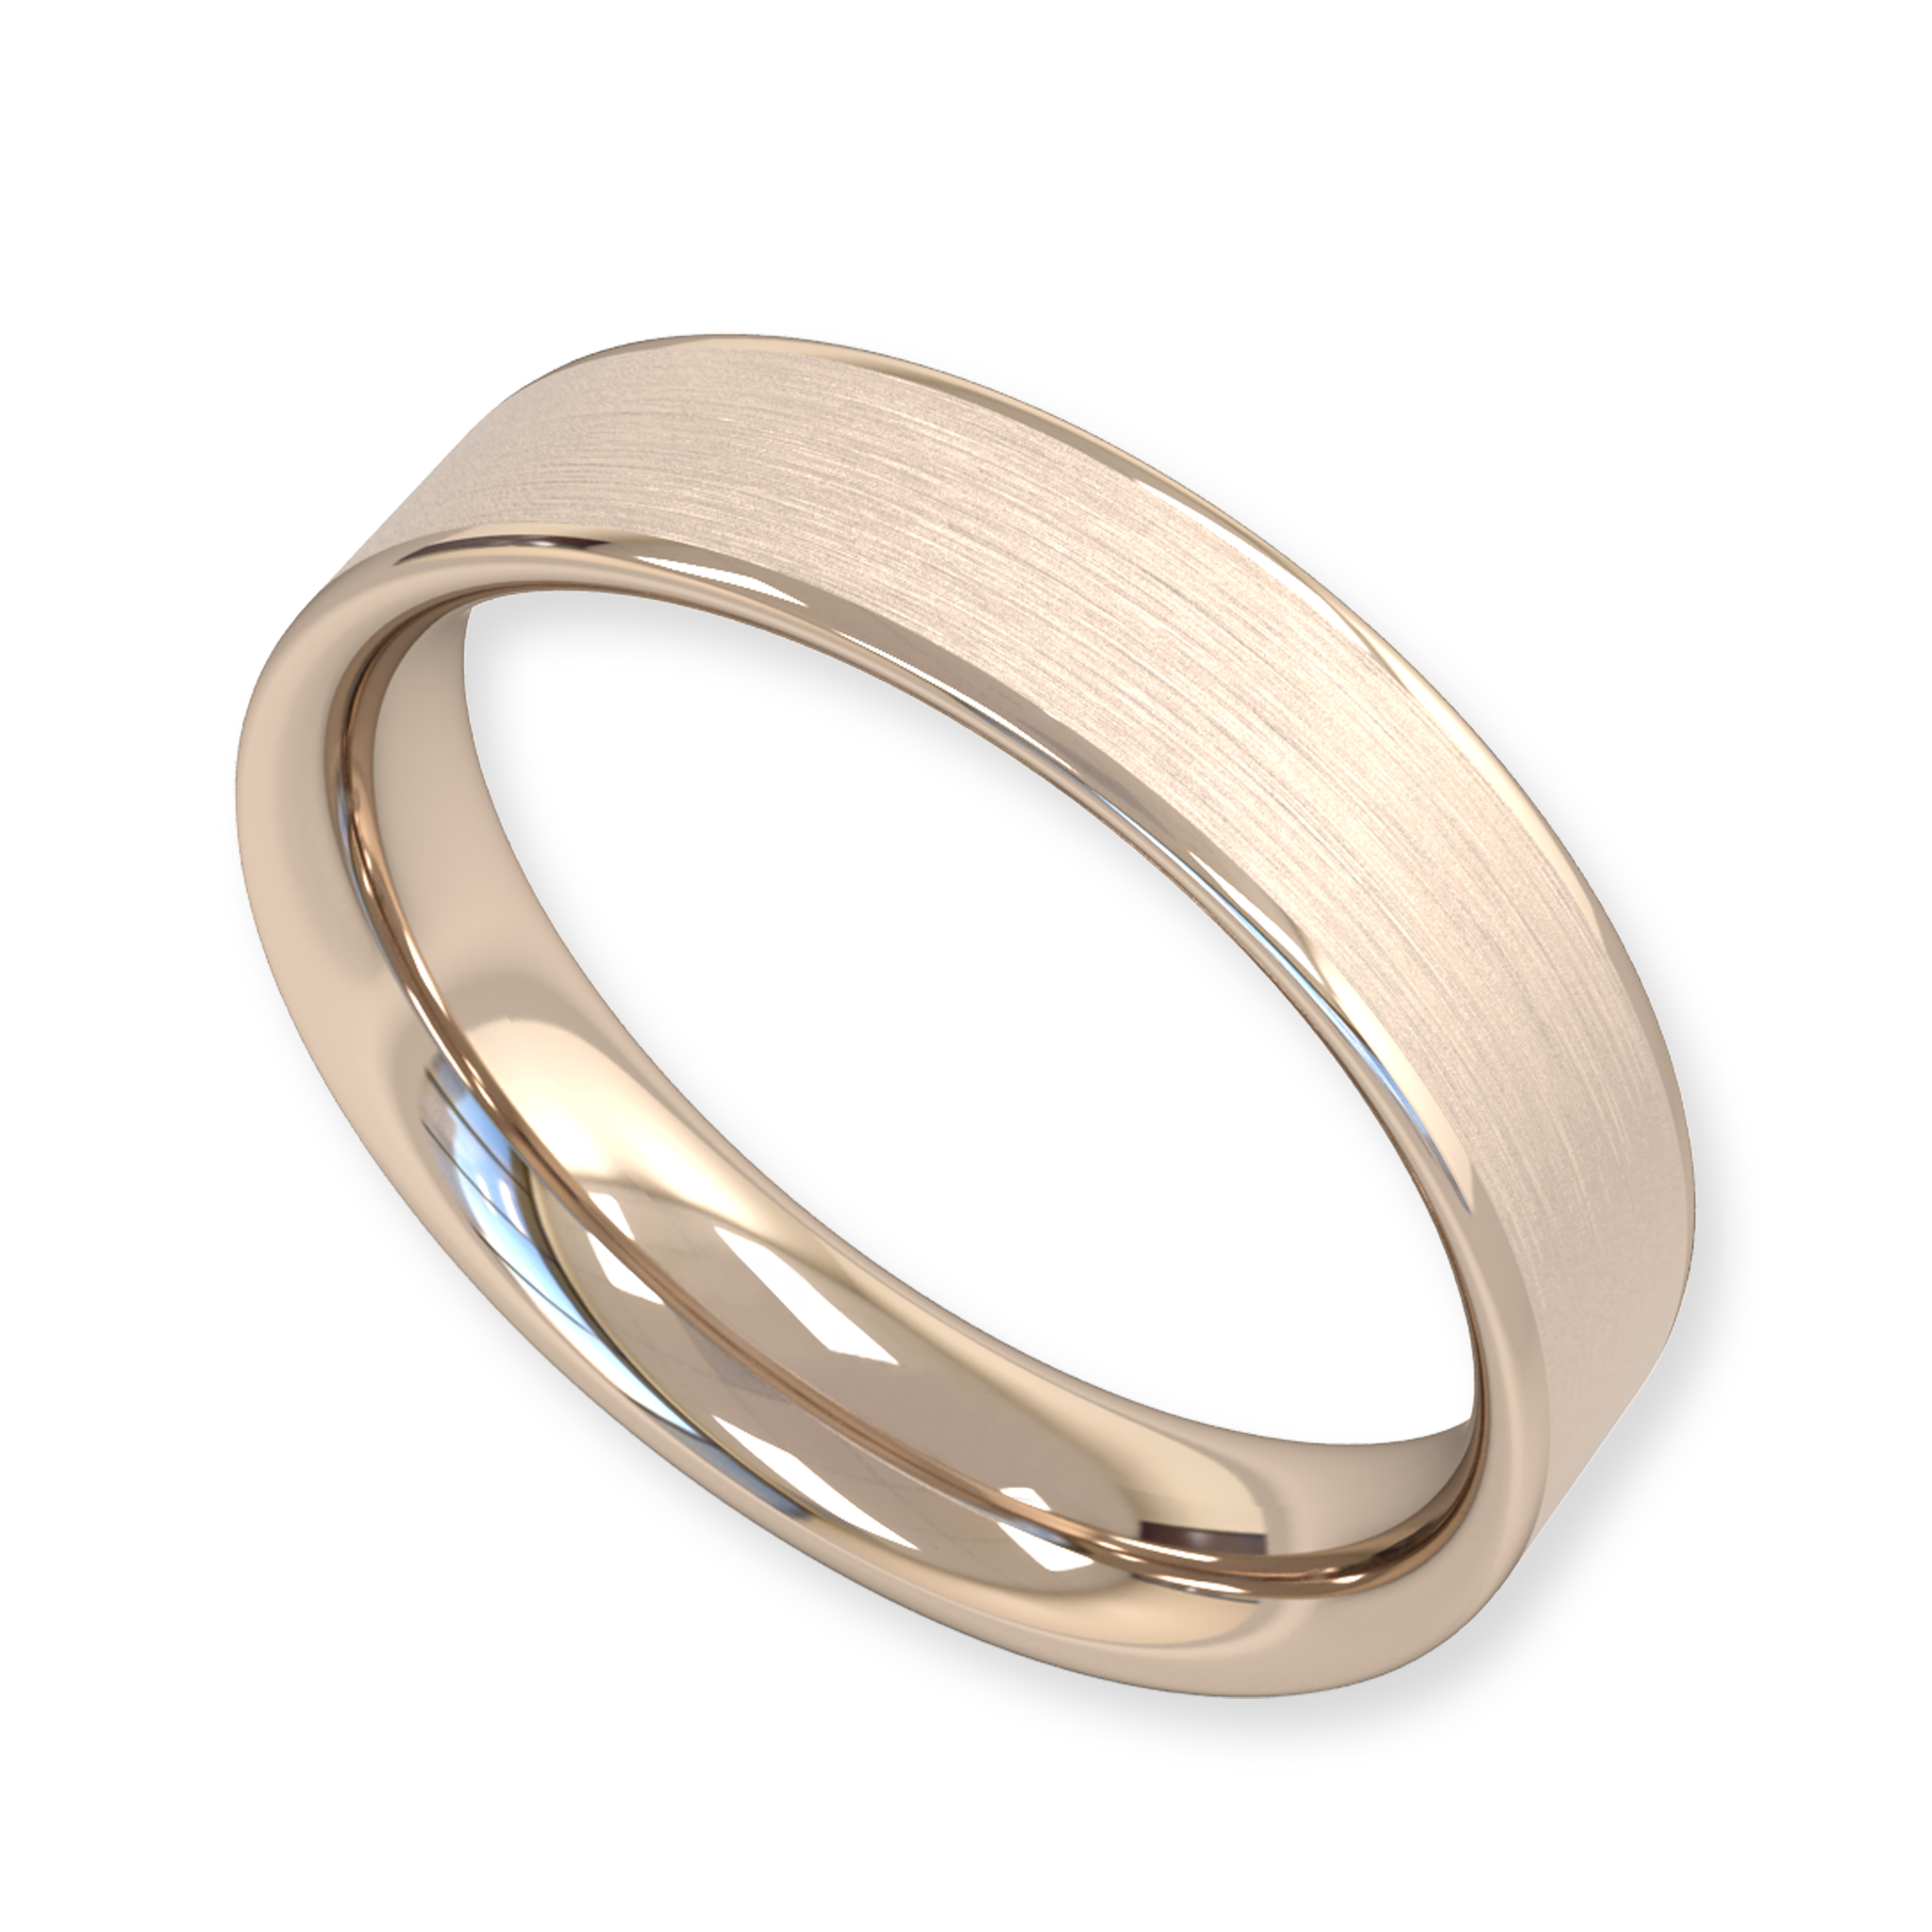 Fairtrade Gold Flat Topped Wedding Ring in